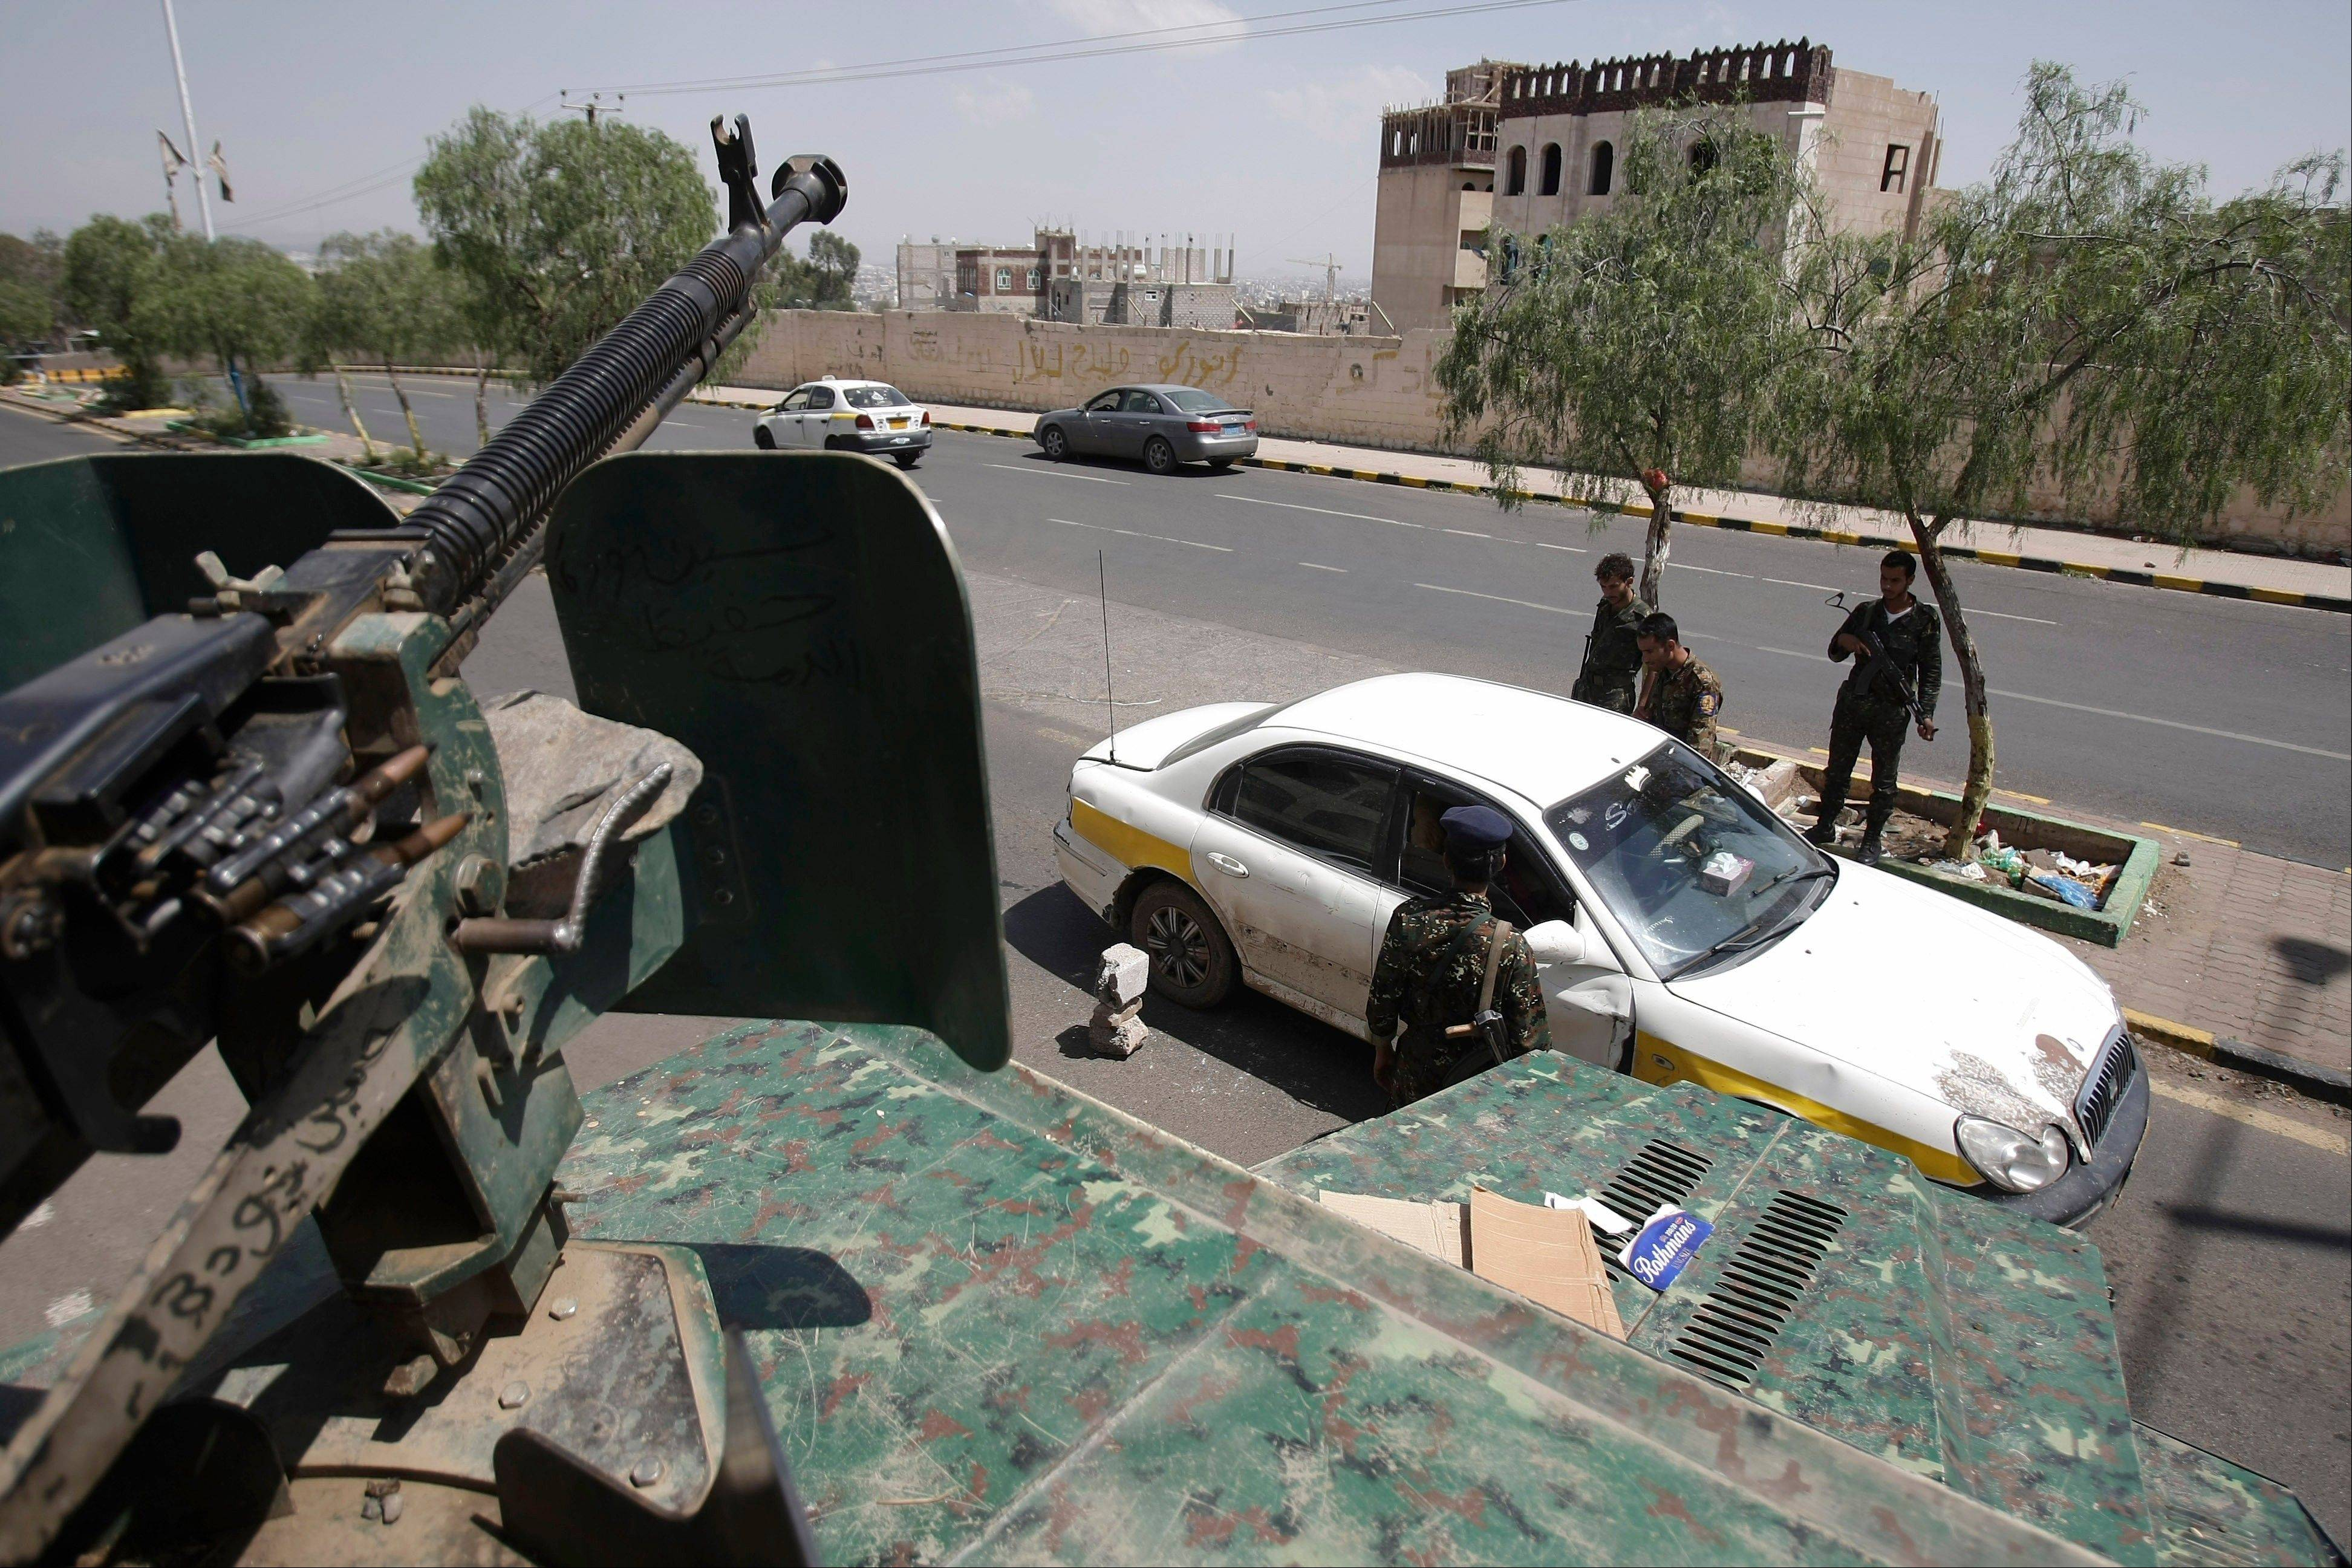 This Aug. 10, 2013, file photo shows Yemeni soldiers inspecting a car at a checkpoint on a street leading to the U.S. and British embassies in Sanaa, Yemen. In secretive chat rooms and on encrypted Internet message boards, al-Qaida fighters have been planning and coordinating attacks.